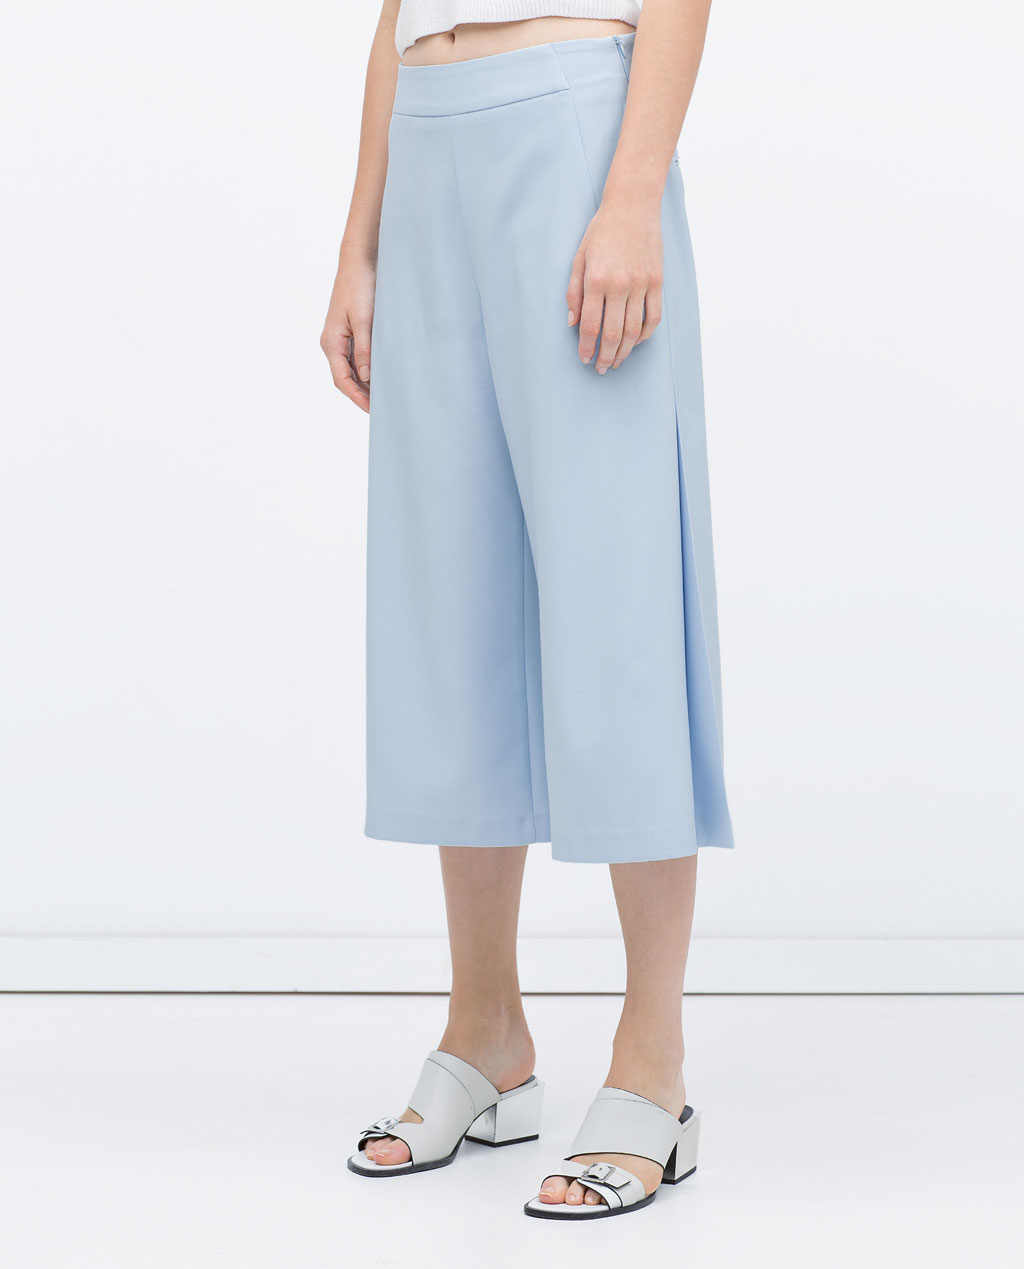 I admit it....  I am totally obsessed with culottes this season. Aside from the factthey looksuper vintage... The air flow and comfort make them that much moreridiculous. Gimme, Gimme!